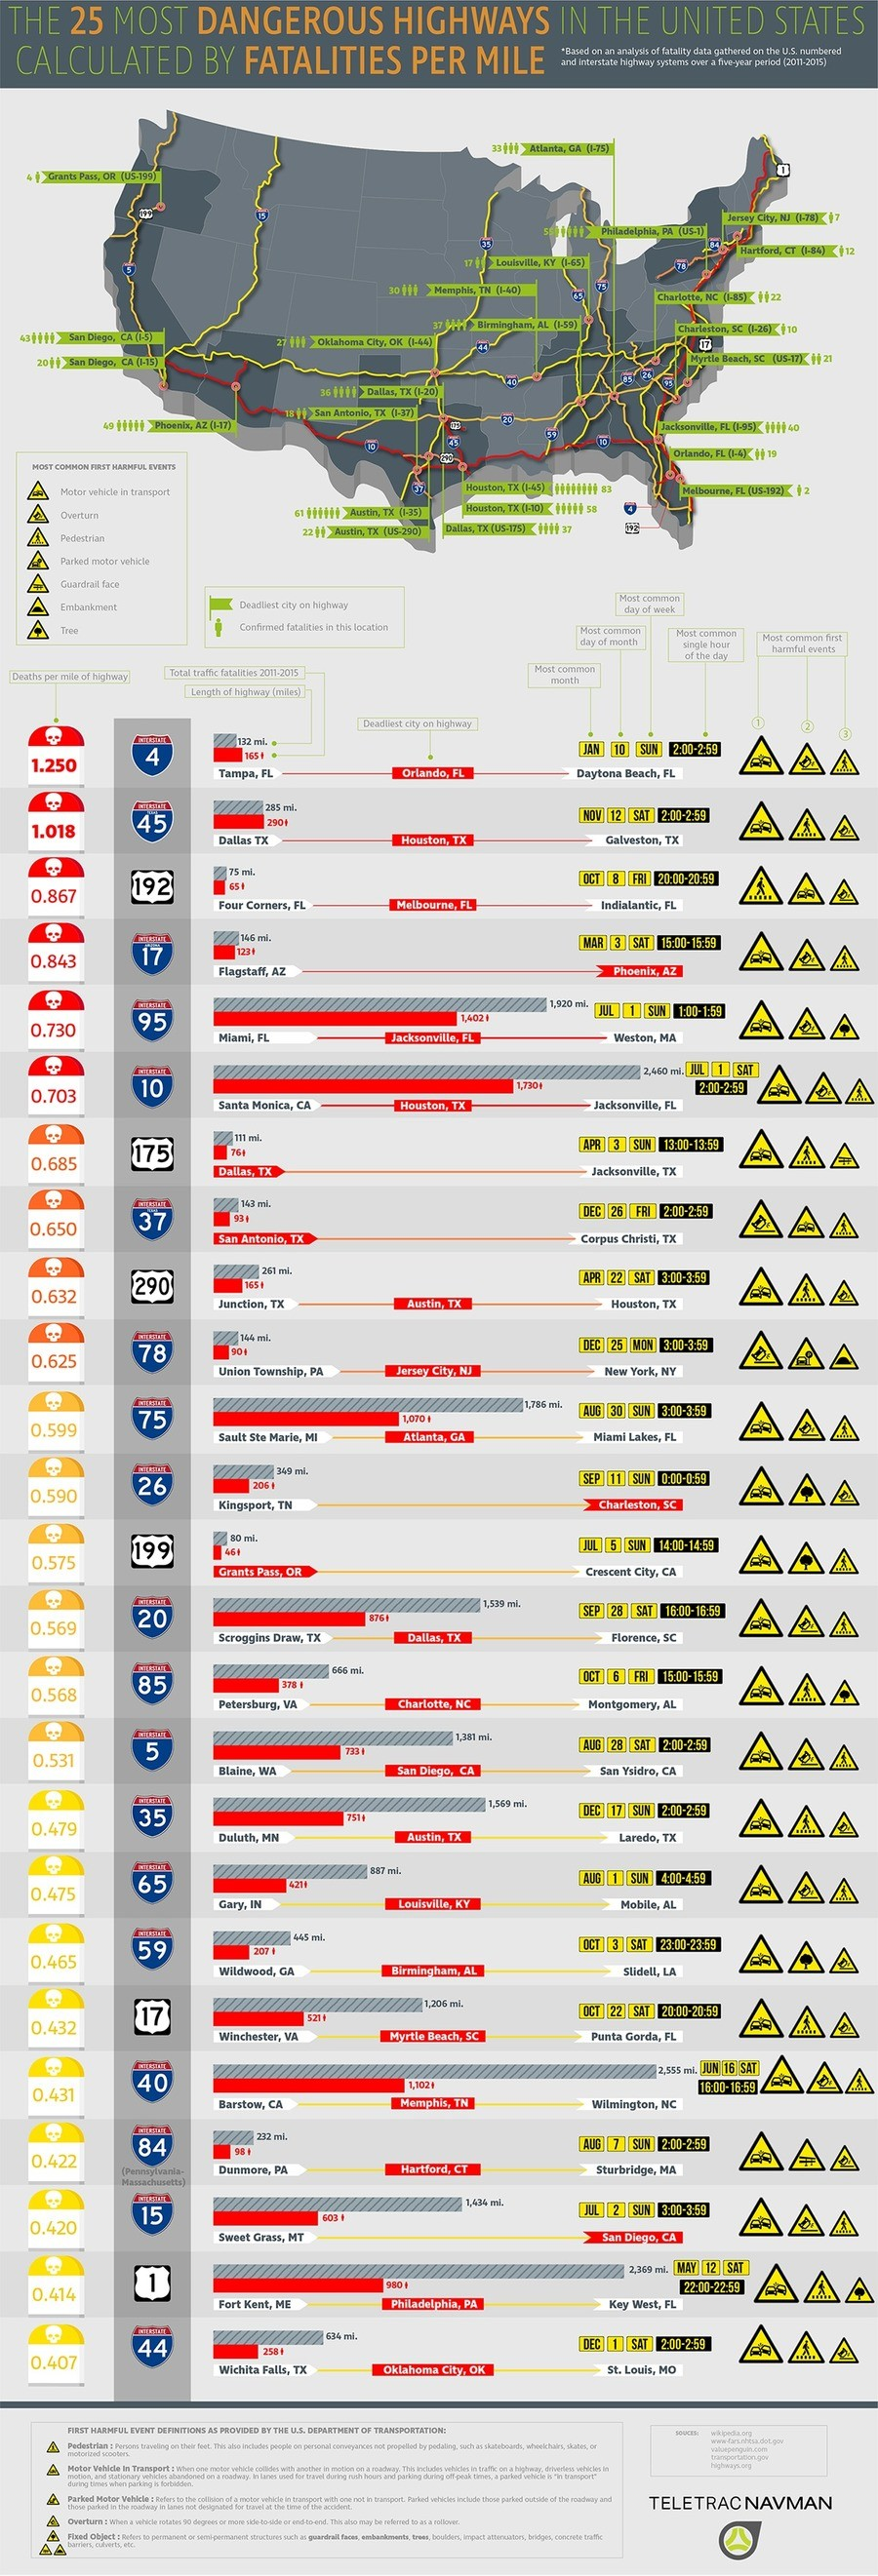 Map shows most dangerous highways in America. Florida and Texas, you guys are crazy. Sauce: https://www.teletracnavman.com/infographics/most-dangerous-roads-in-